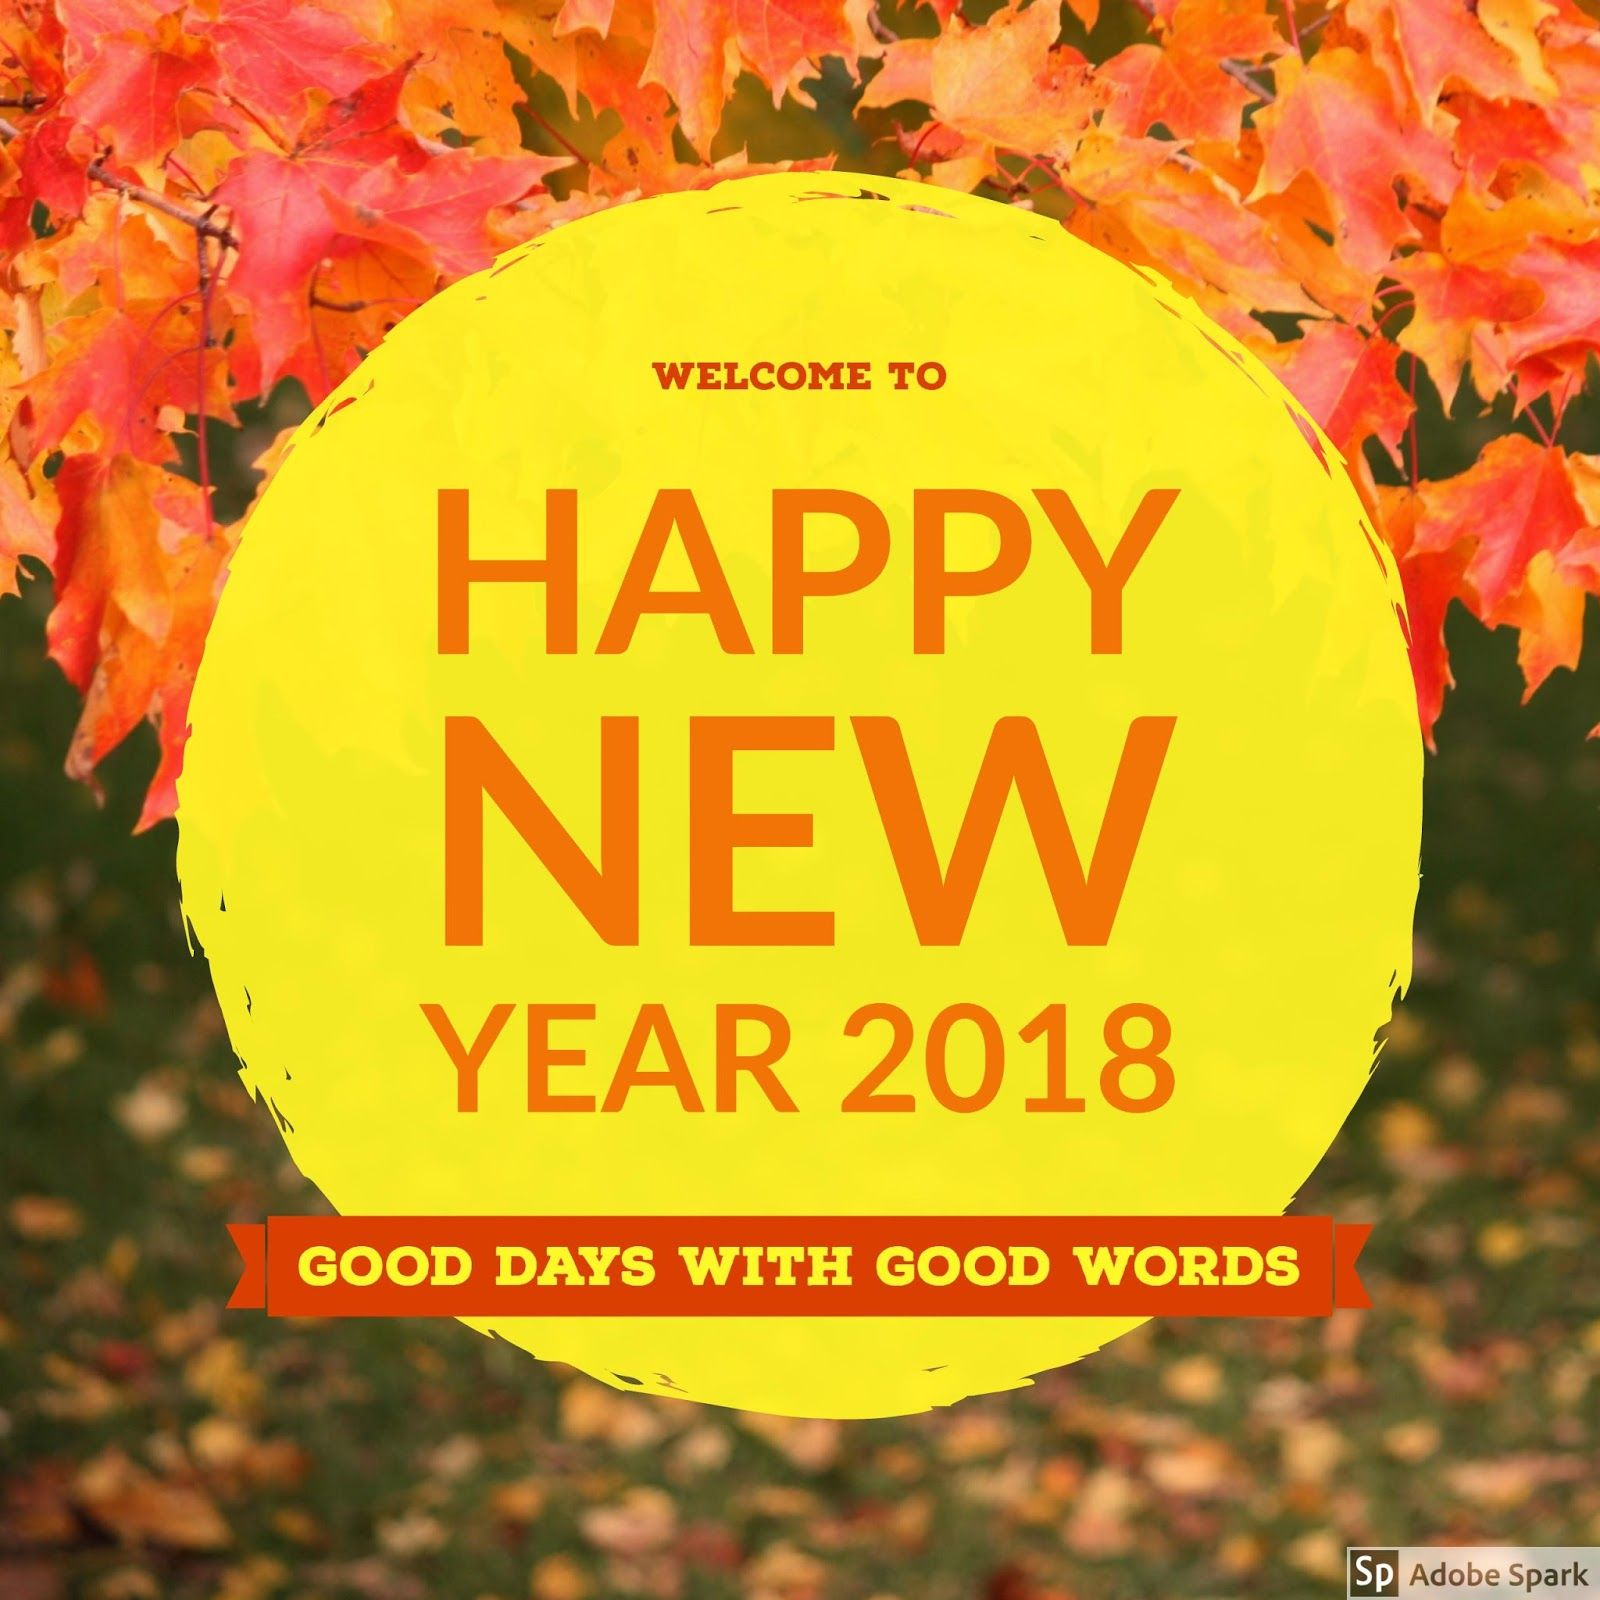 Welcome To Happy New Year 2018 Good Days With Good Words Good